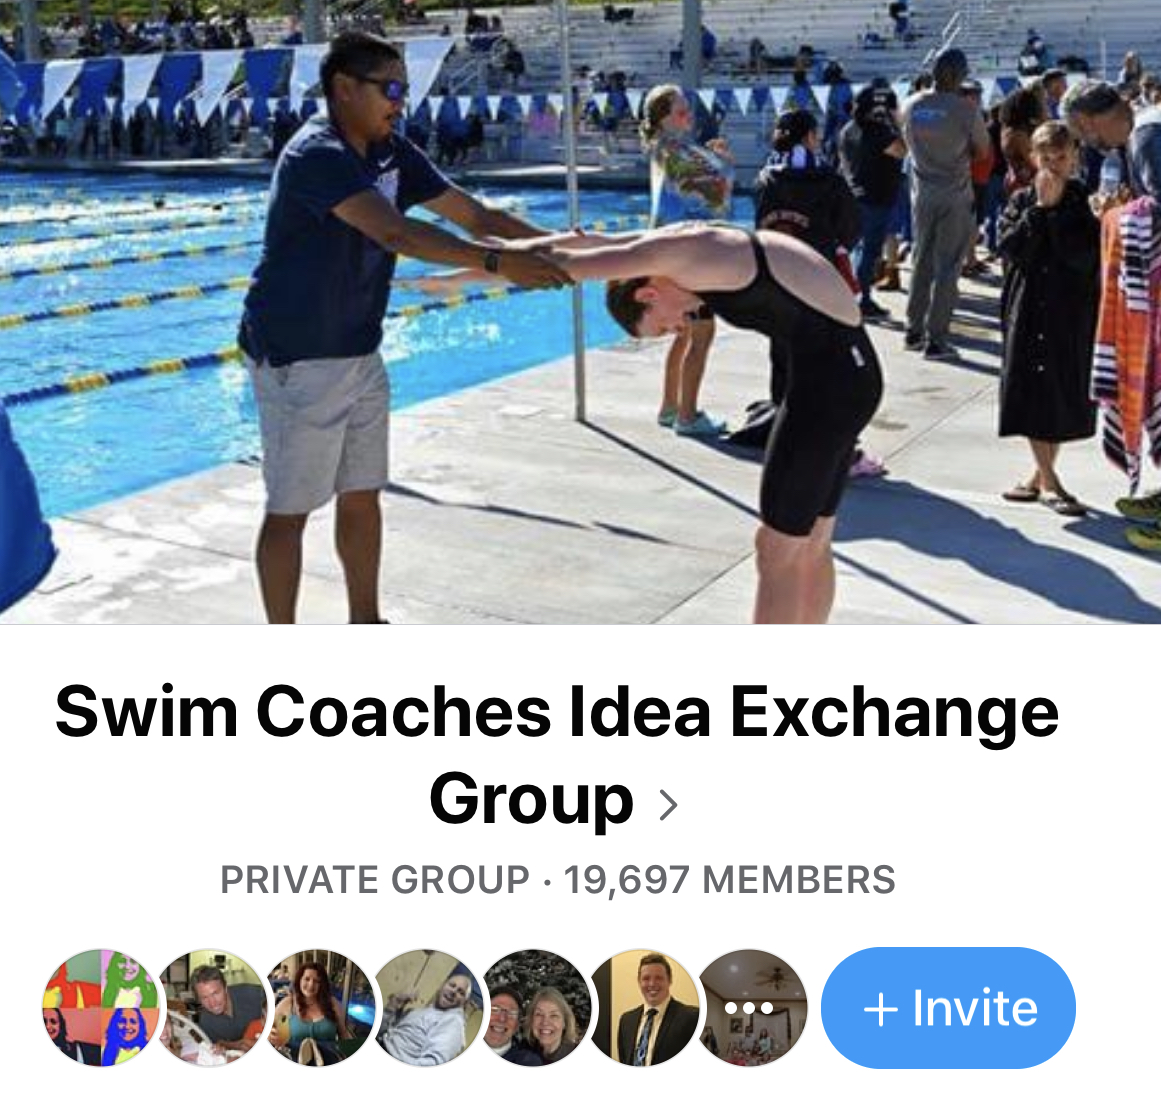 Swim Coaches Idea Exchange on Facebook